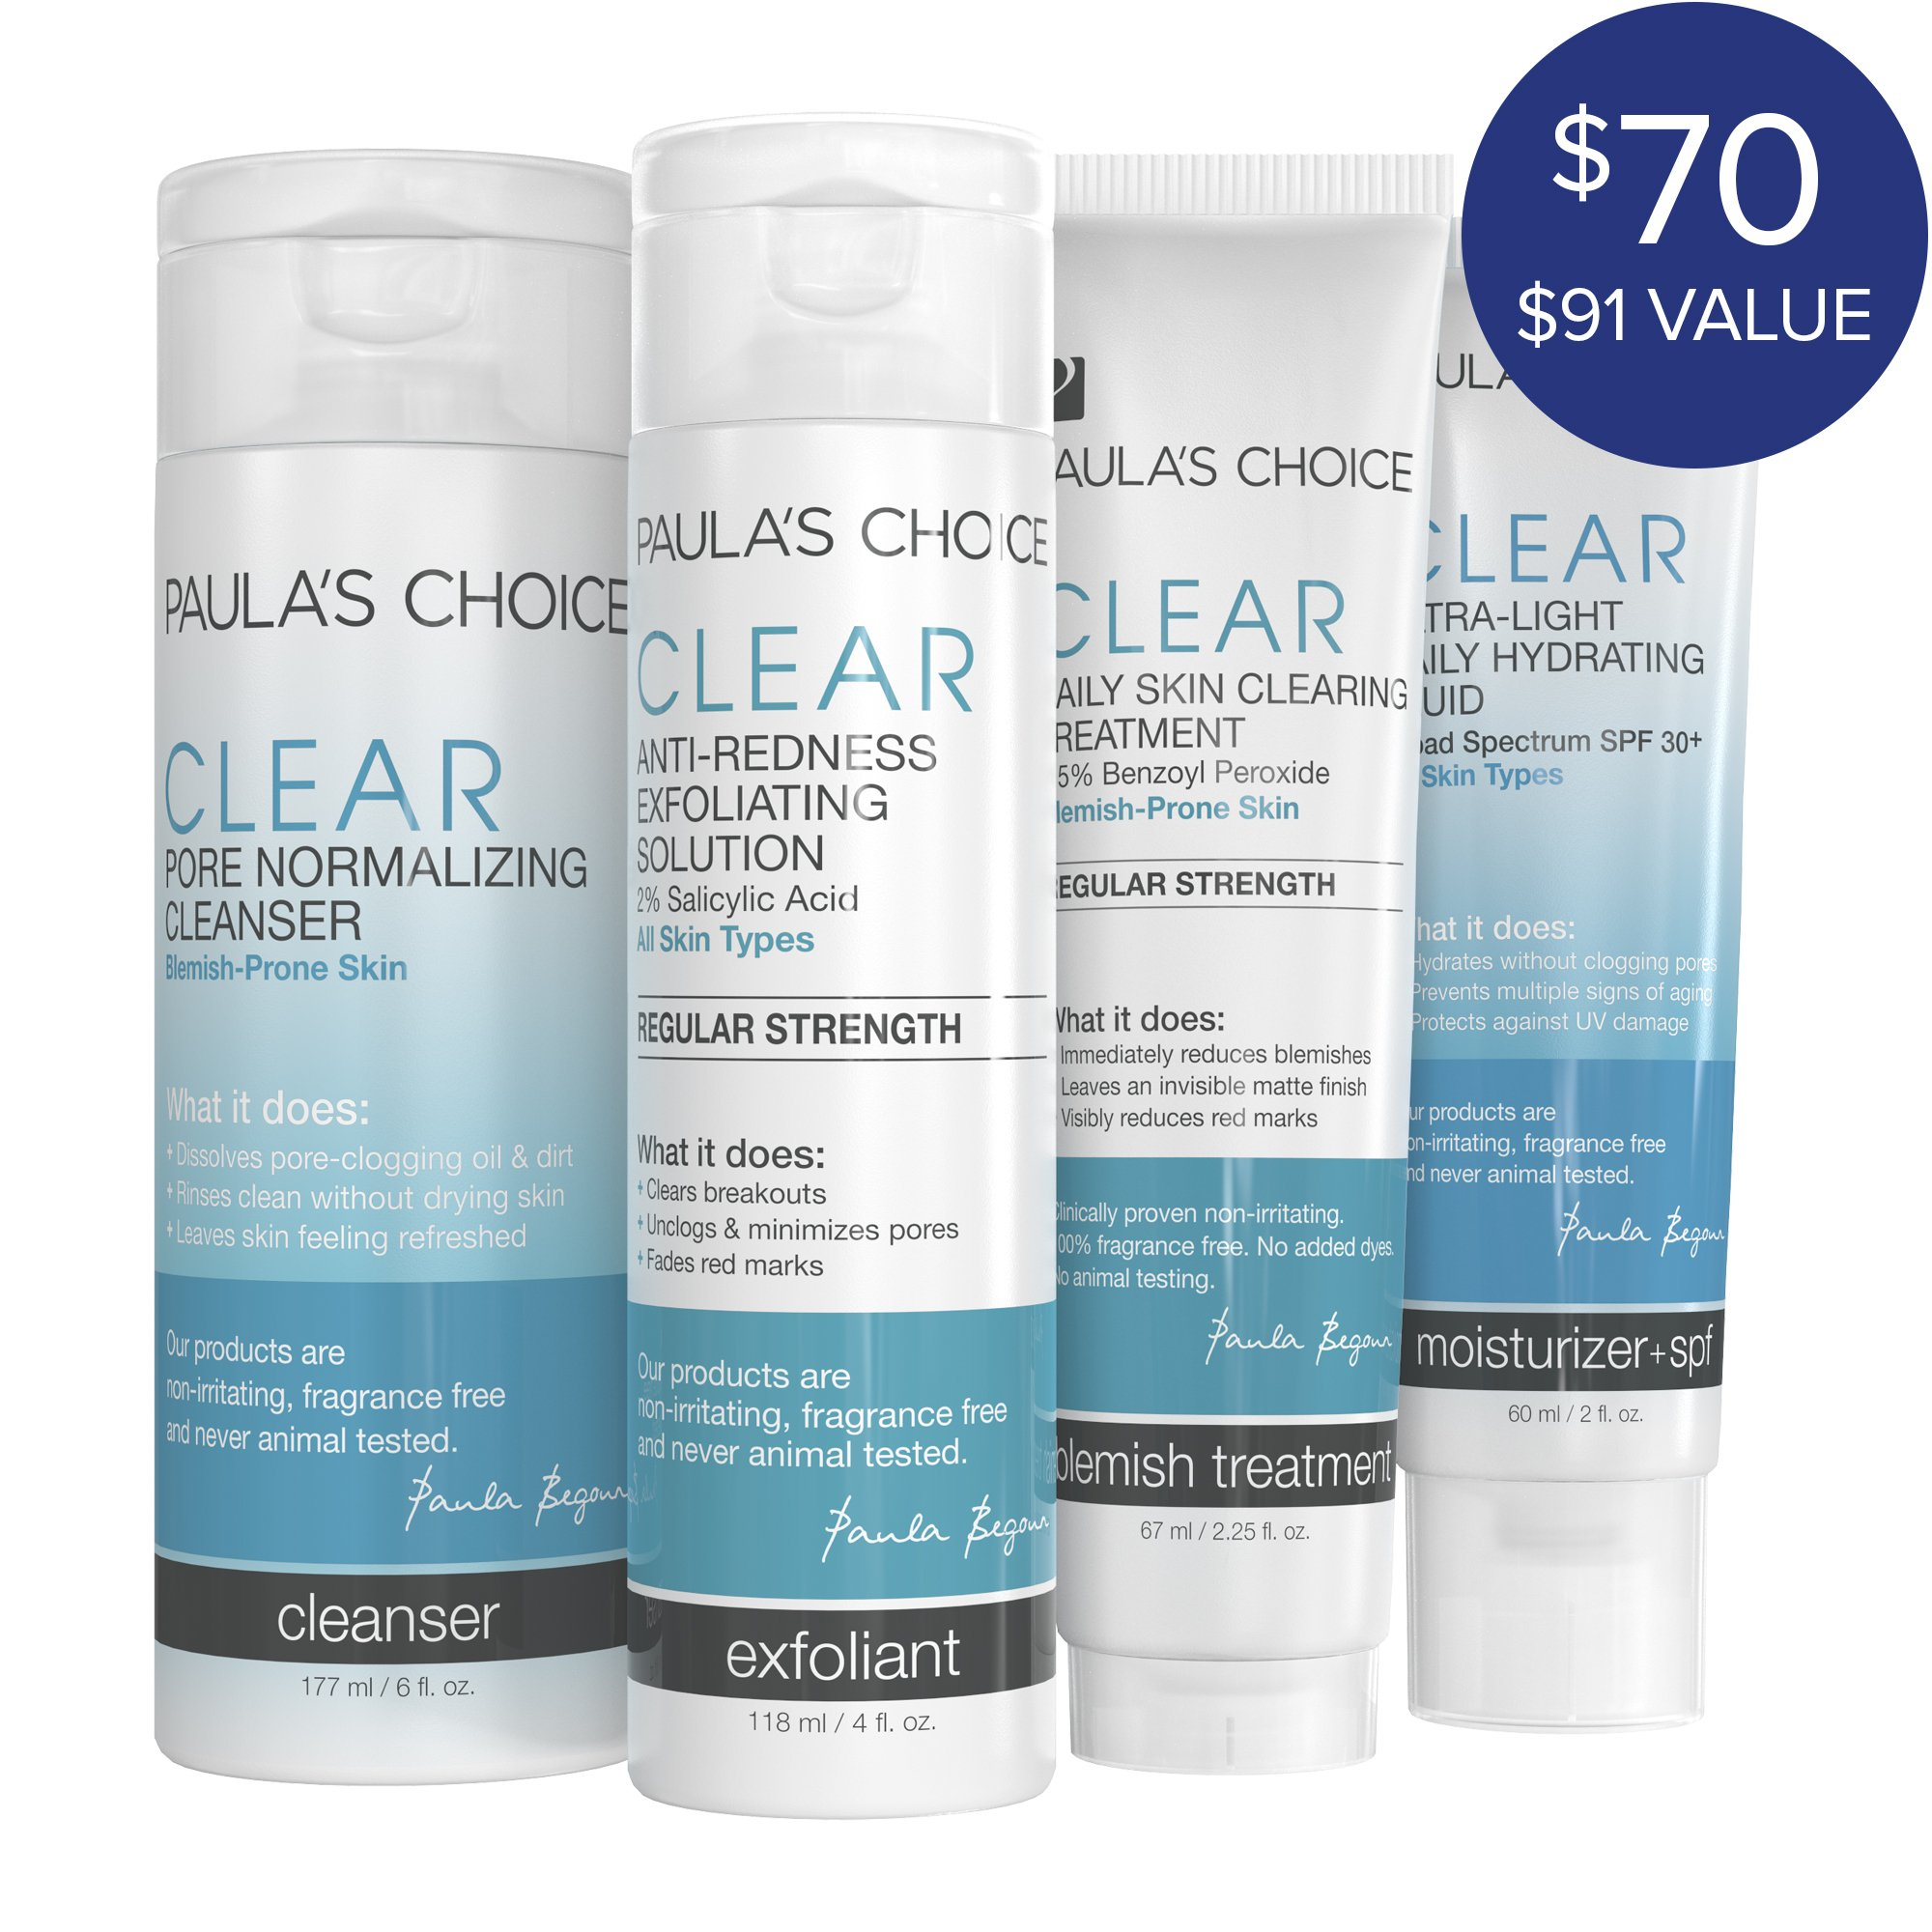 Paula's Choice-CLEAR Regular Strength Kit and Ultra-Light Daily Fluid SPF 30+ Anti-Aging Moisturizer Blemish-Fighting Skin Care Products Plus Face Moisturizer with Sunscreen